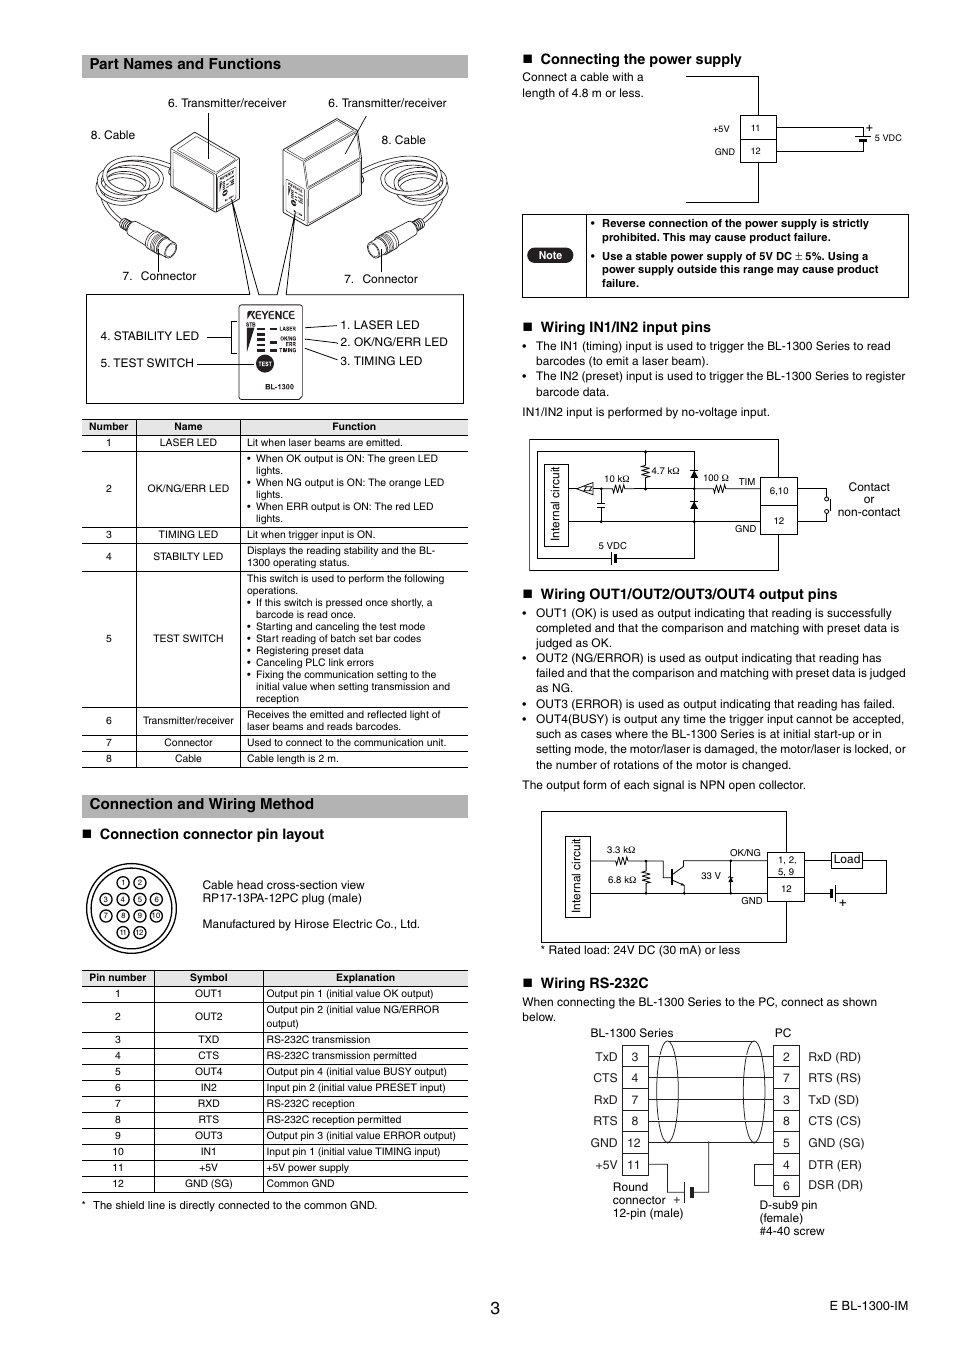 cable wiring method